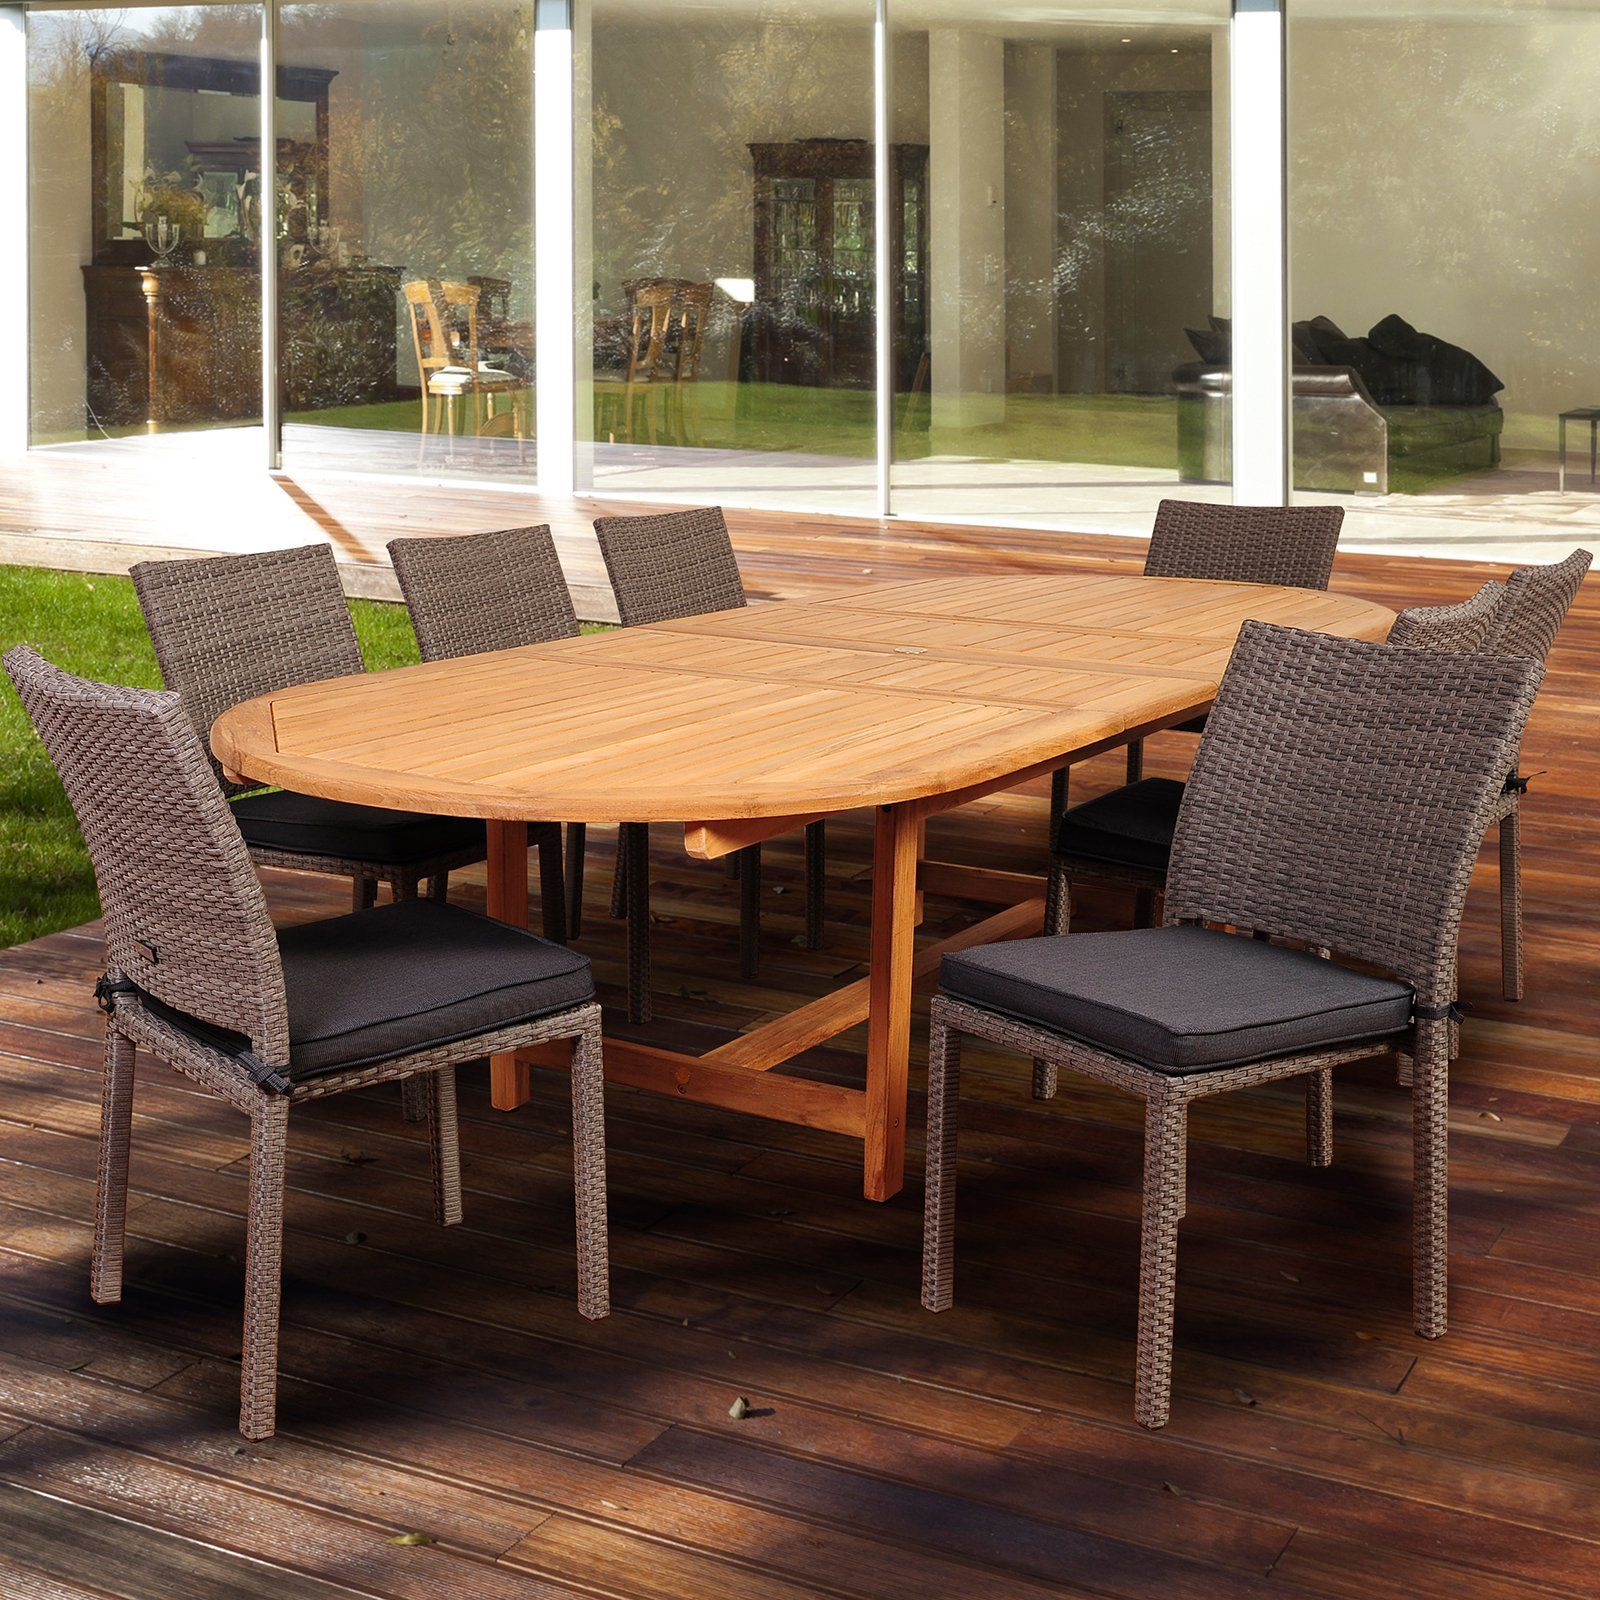 Vermont Extendable Garden Table And Chair Set: Amazonia East Point 9 Piece Double Extendable Dining Set